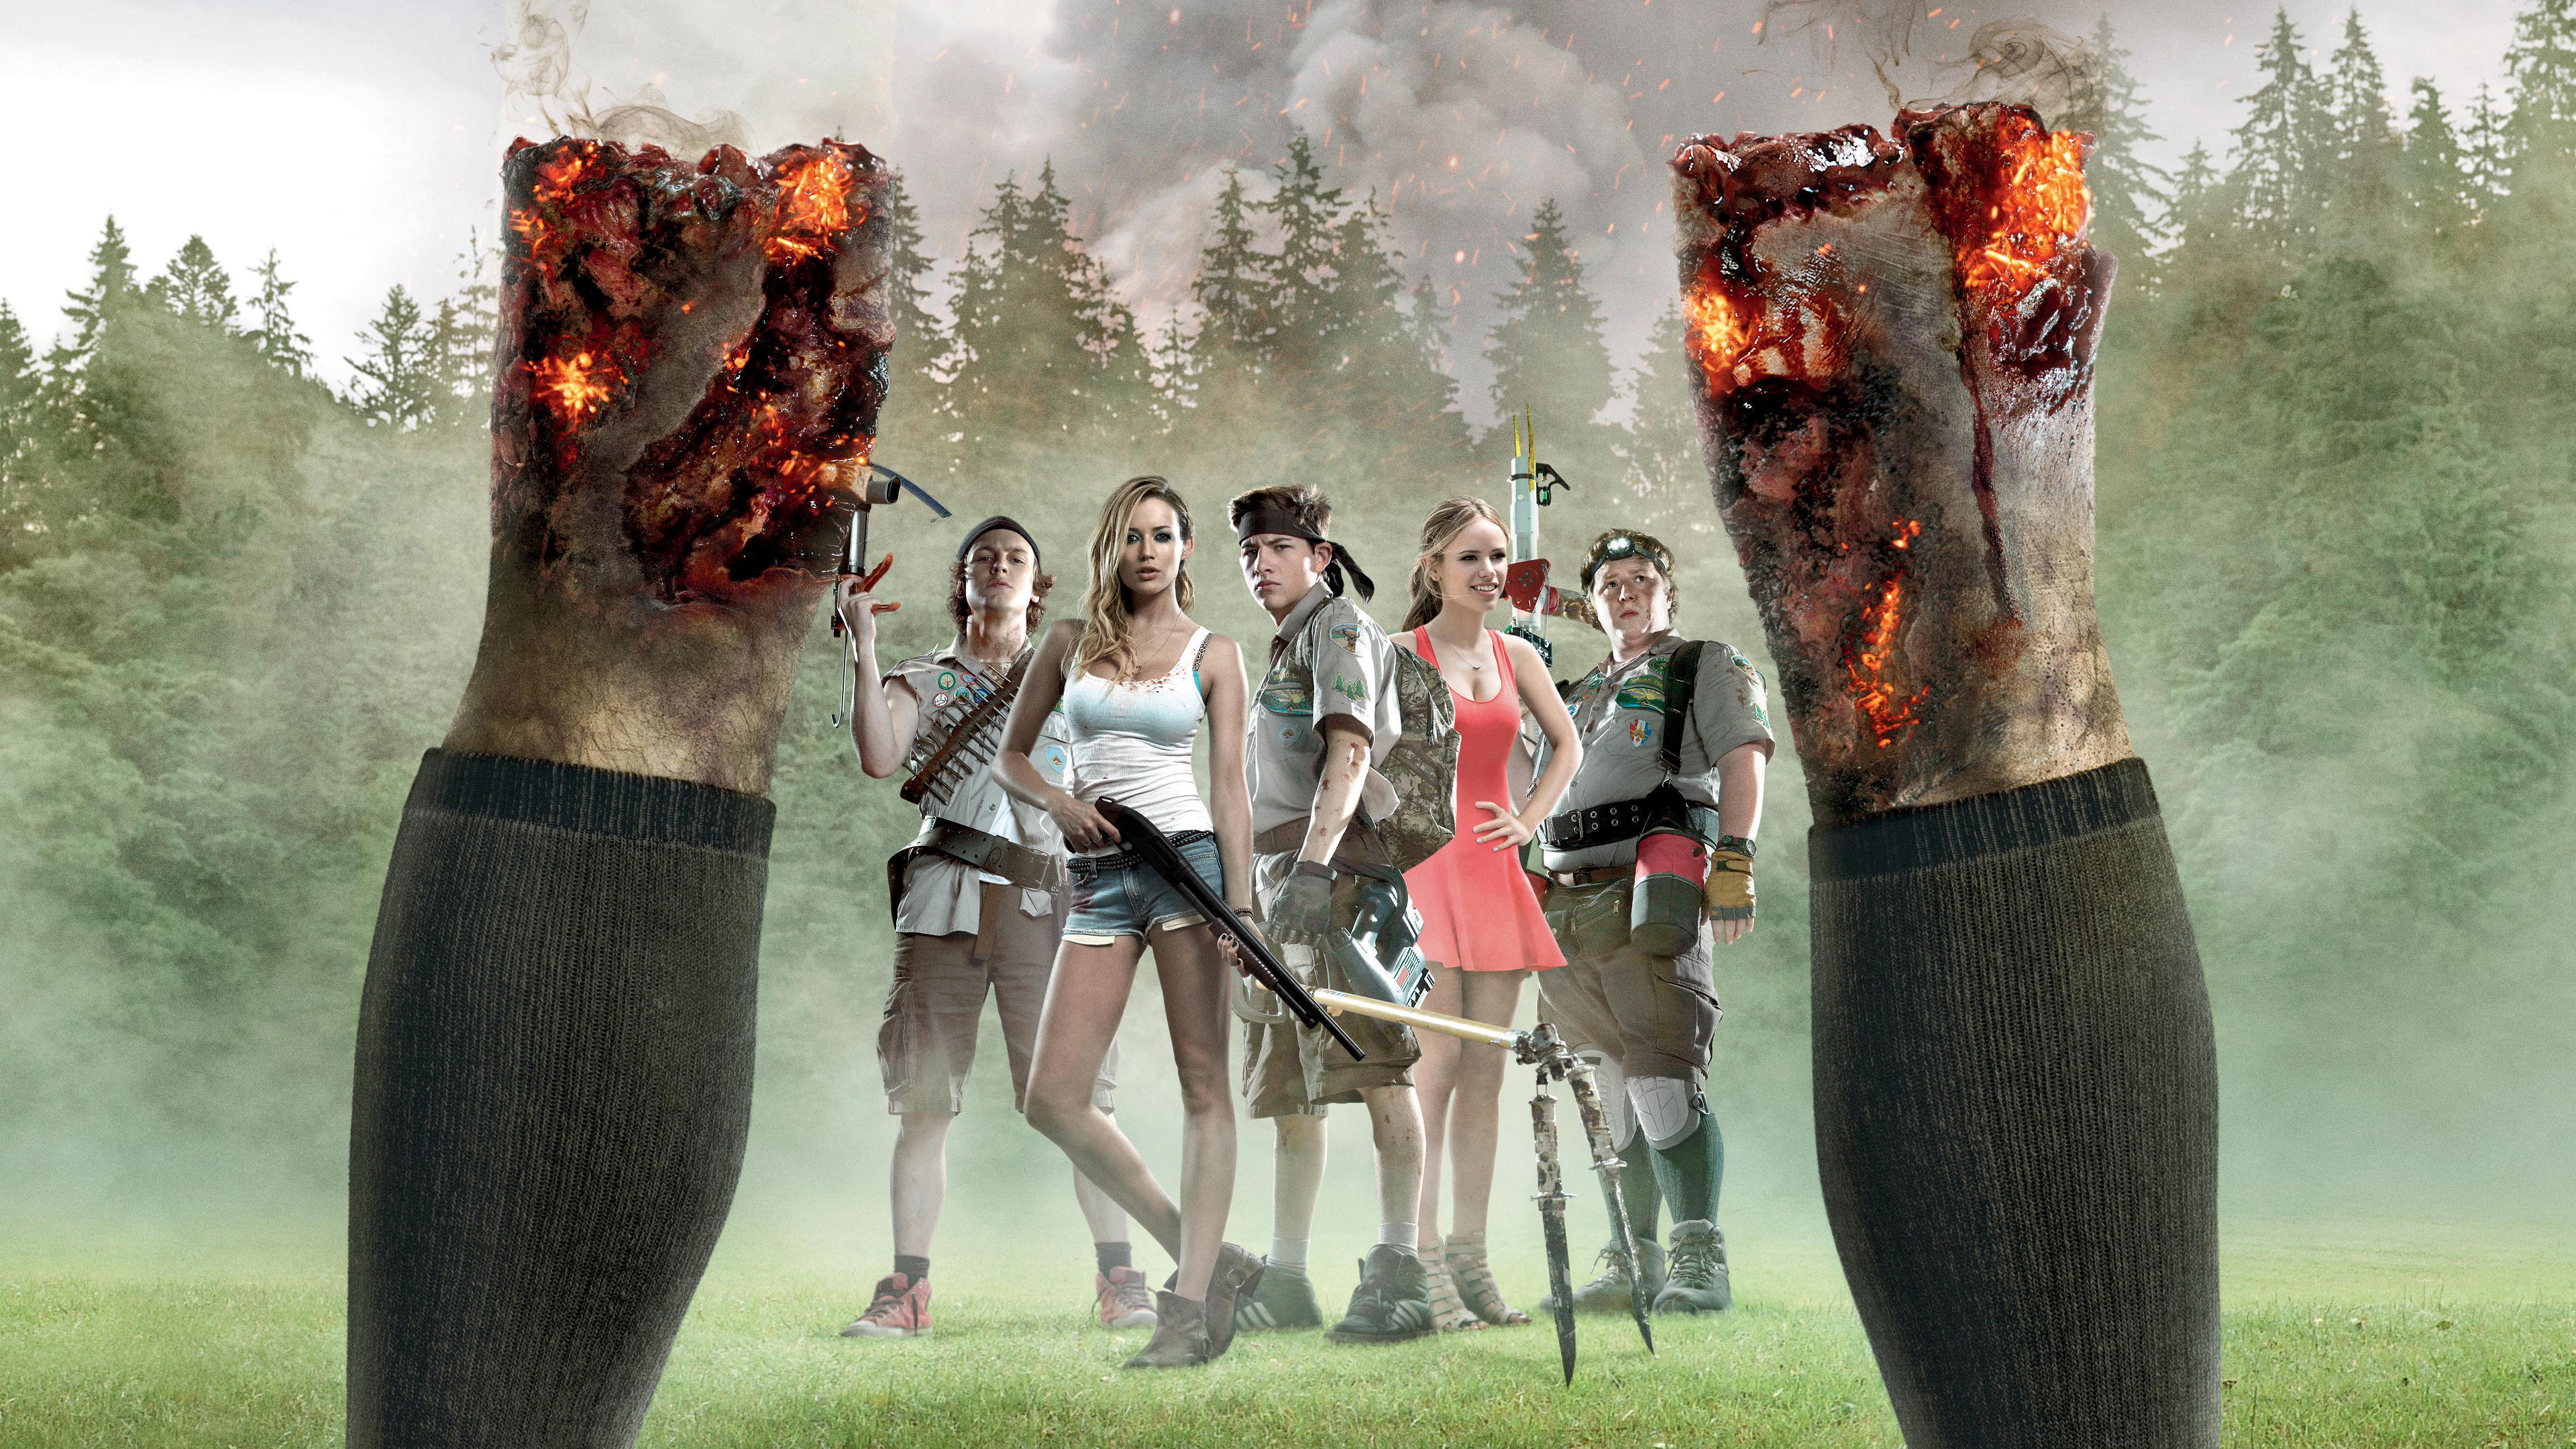 scouts guide to the zombie apocalypse wallpapers pictures